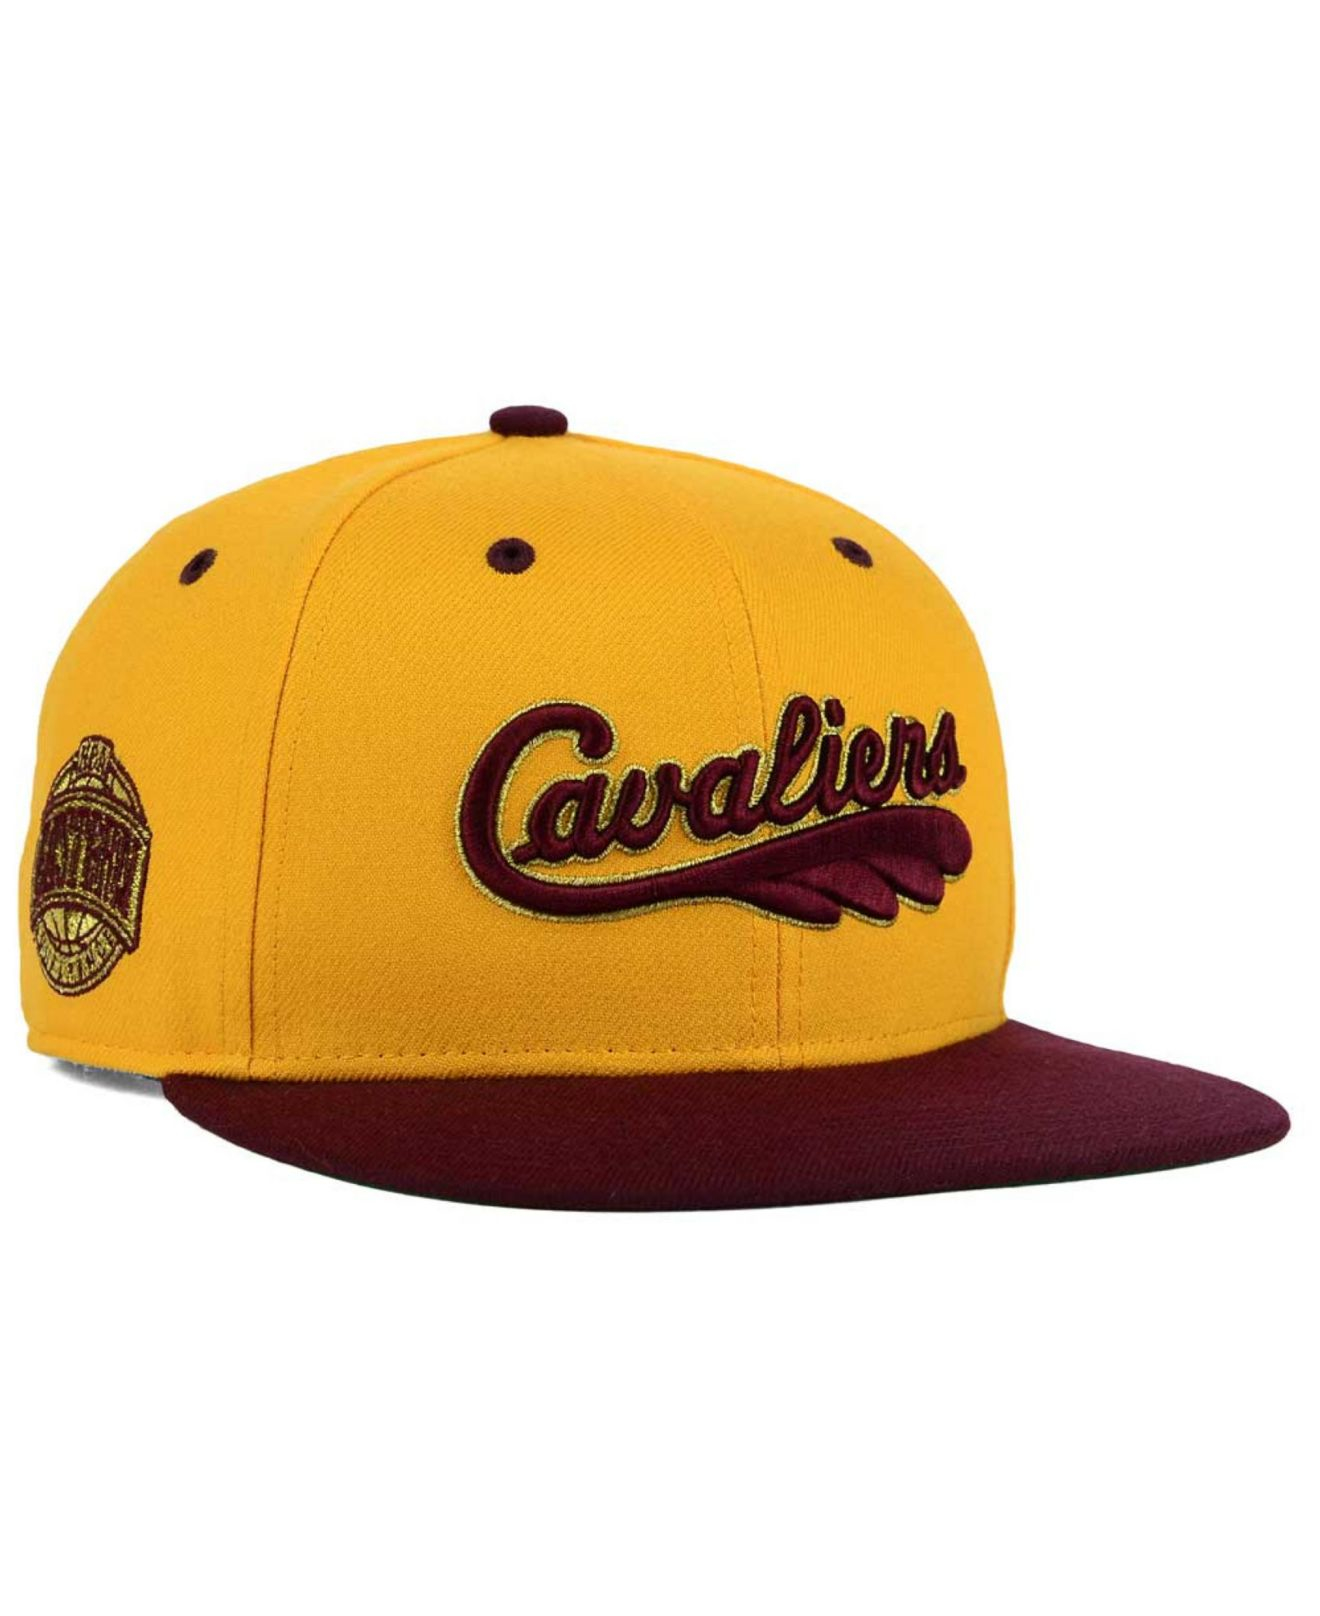 size 40 7434a 1e776 ... cheap nba cleveland cavaliers snapback lebron james wine yellow lyst 47  brand cleveland cavaliers hwc gold purchase 2014 new era ...